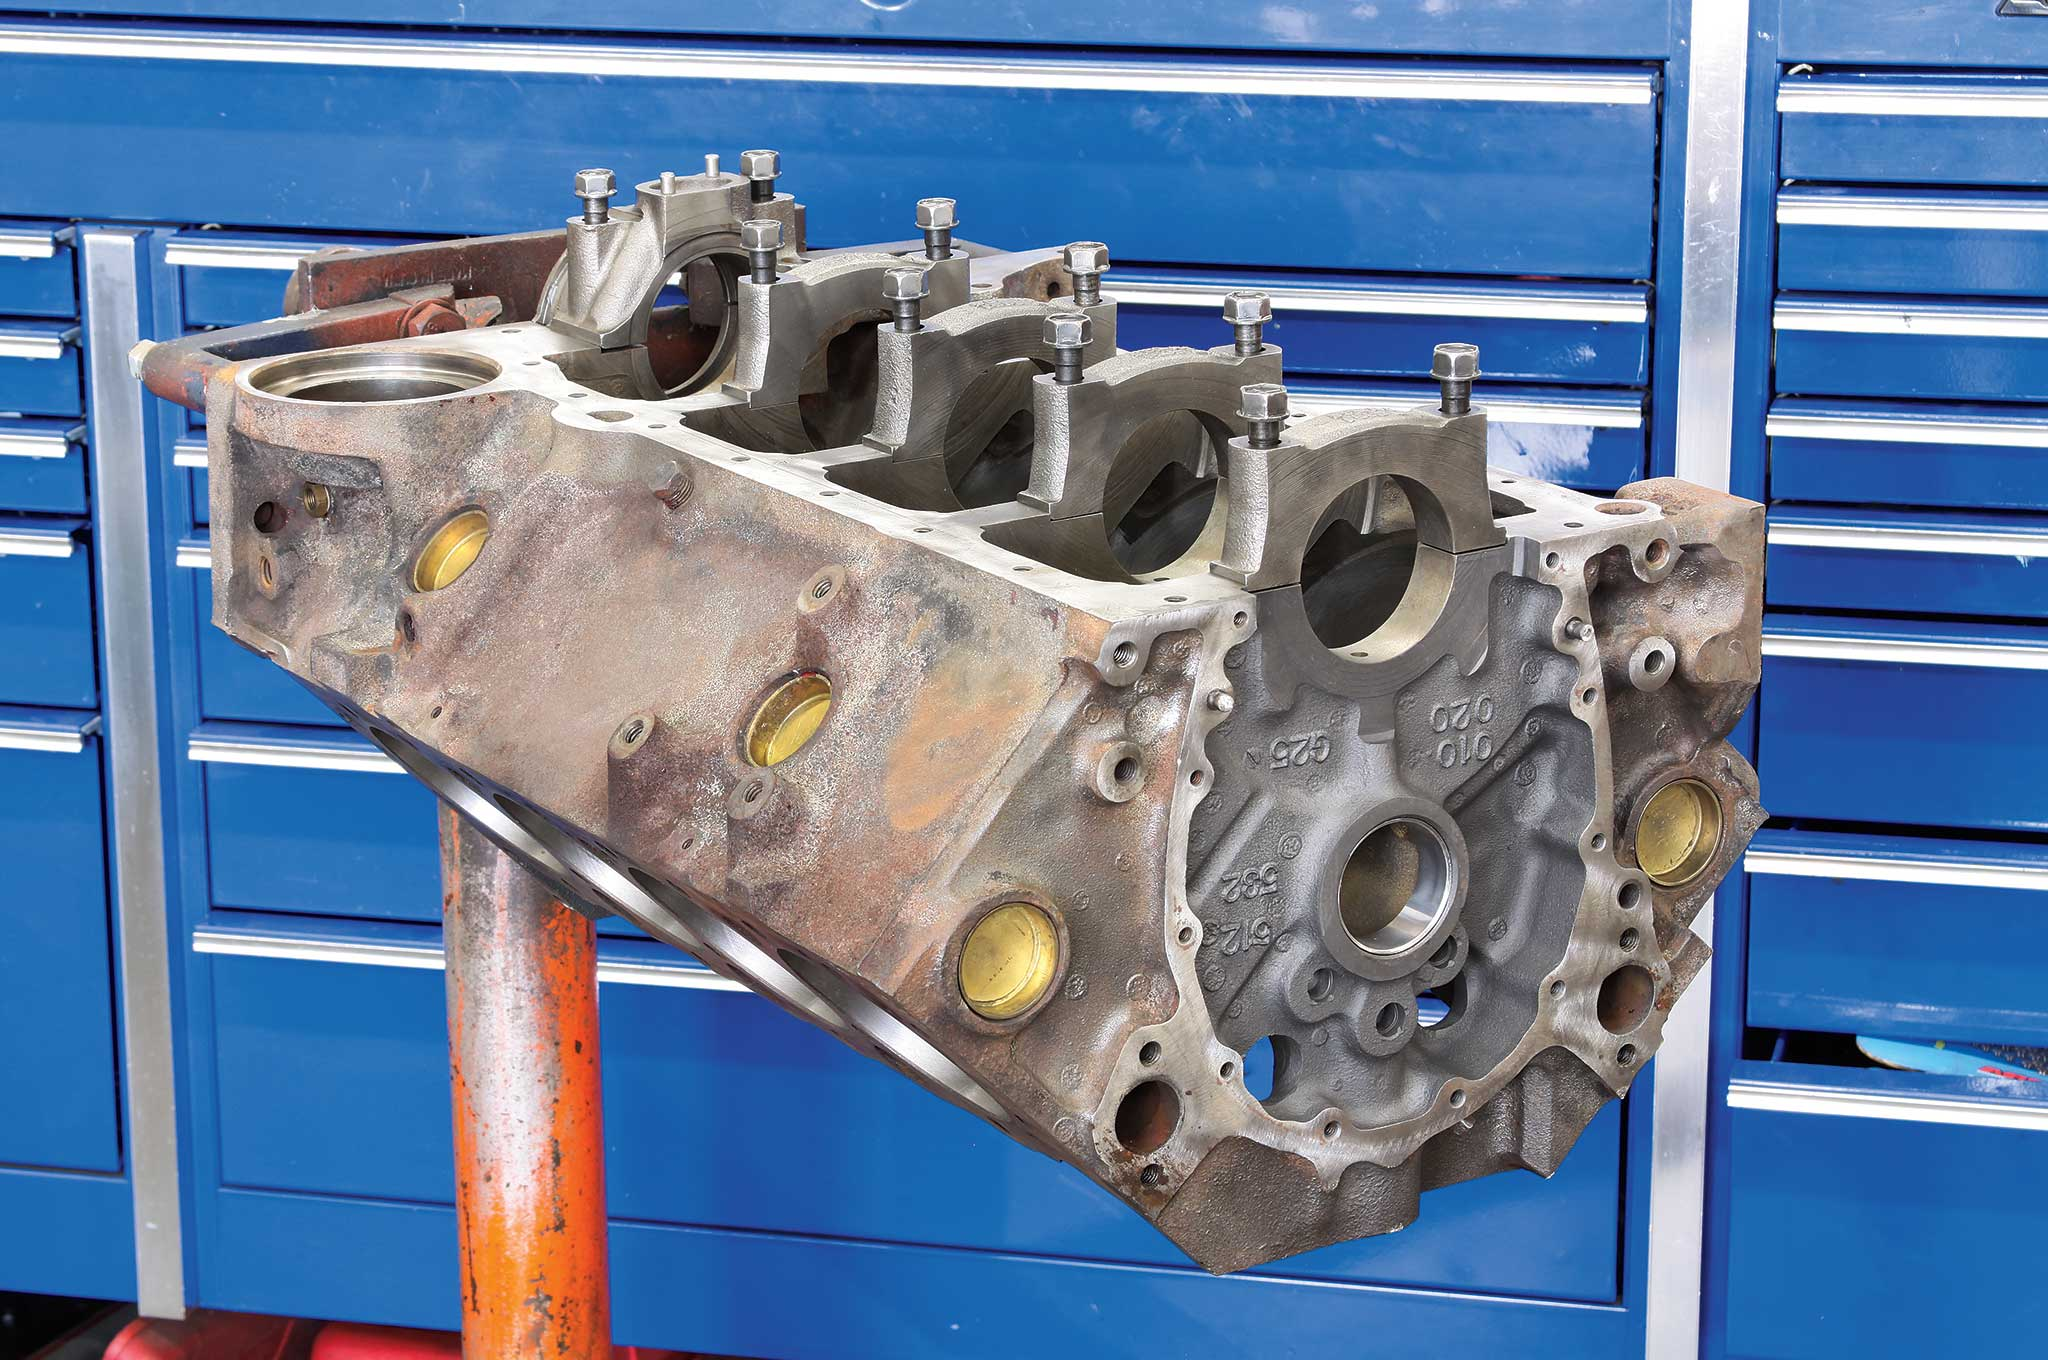 rebuilding-a-small-block-on-a-budget-engine-block-core